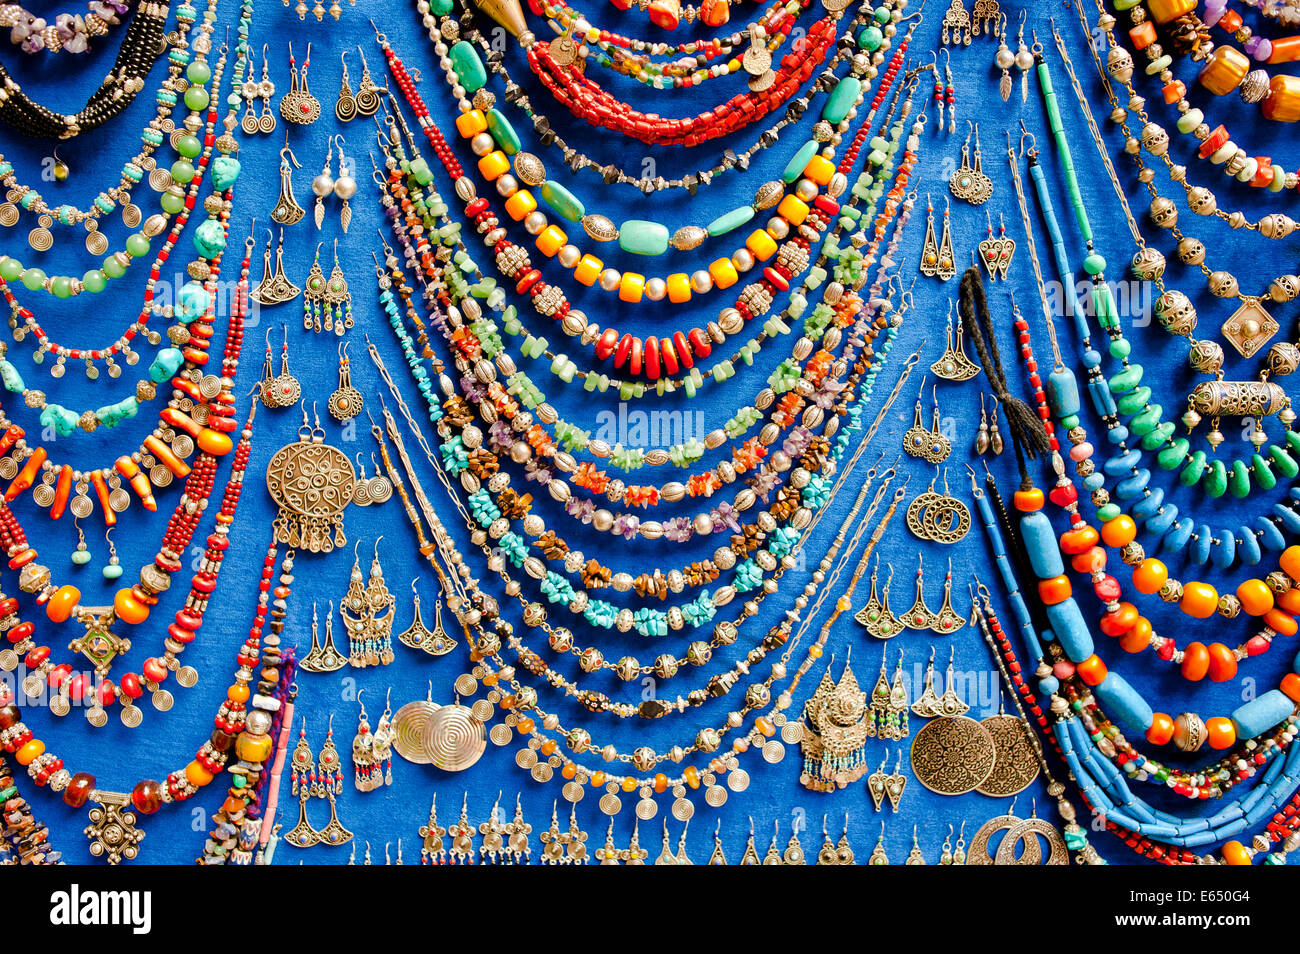 Display of various necklaces and earrings with glass beads and traditional Arab and Berber patterns - Stock Image